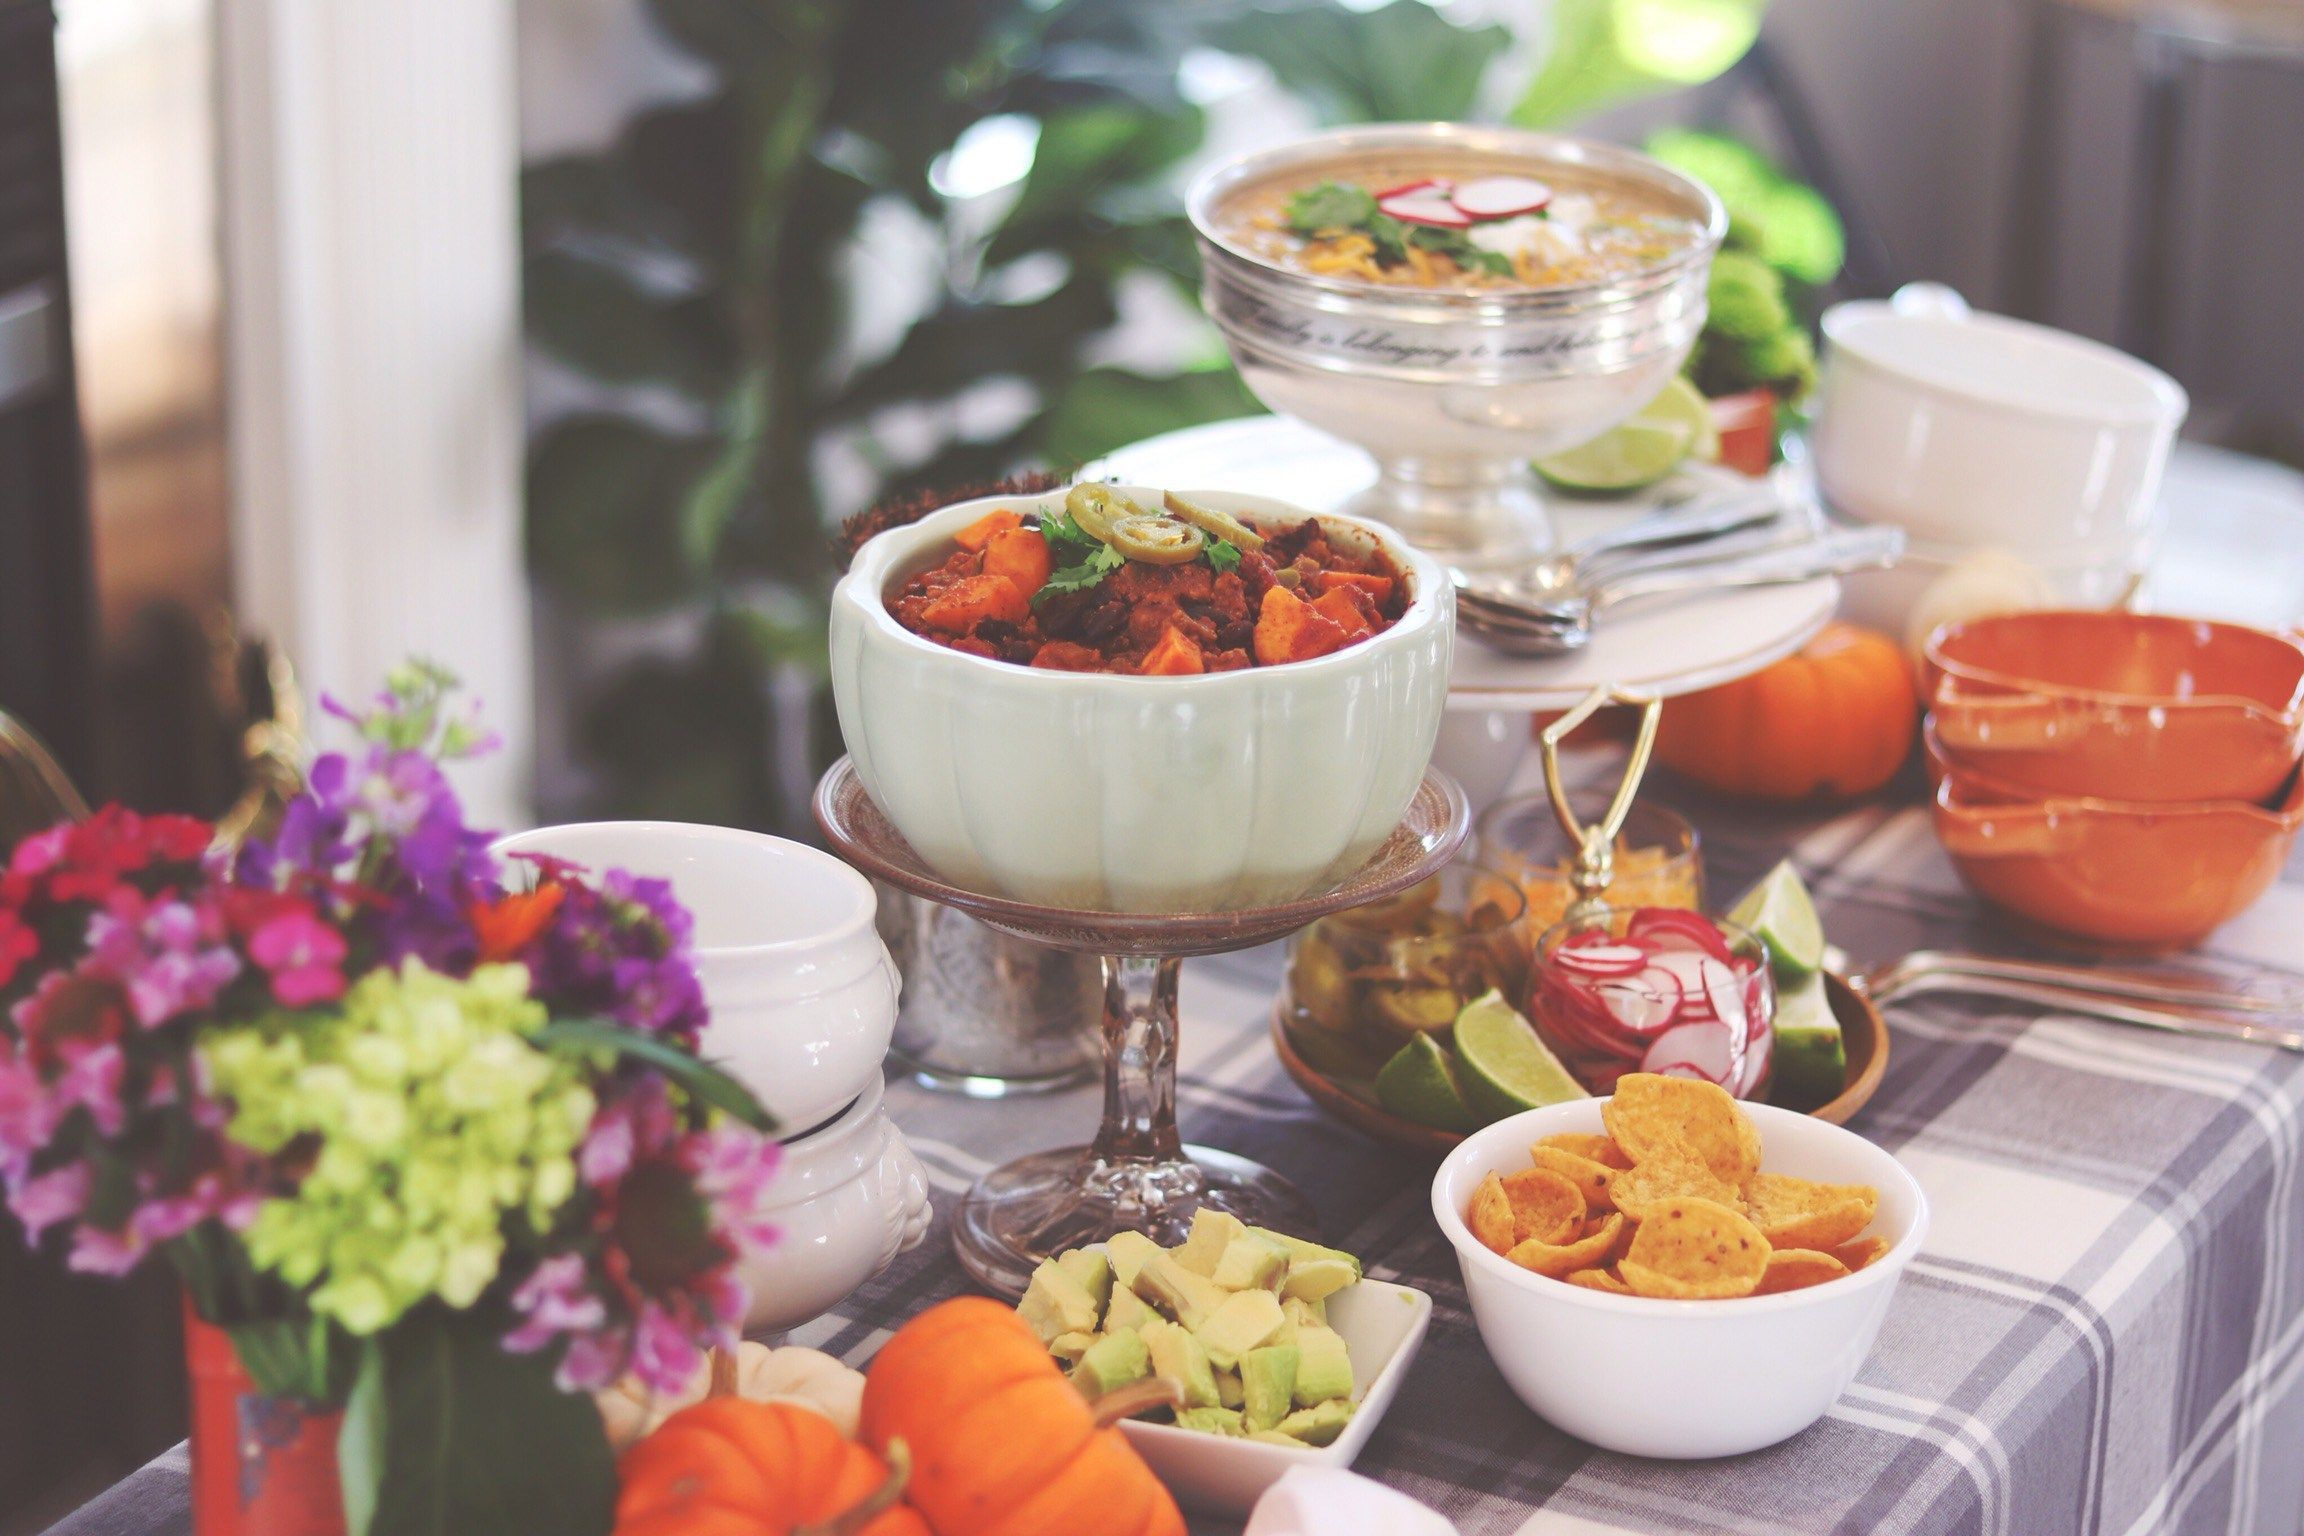 Build an Epic Chili Bar to Affordably Feed a Crowd #chilibar Toppings to help create an Epic Chili Bar #chilibar